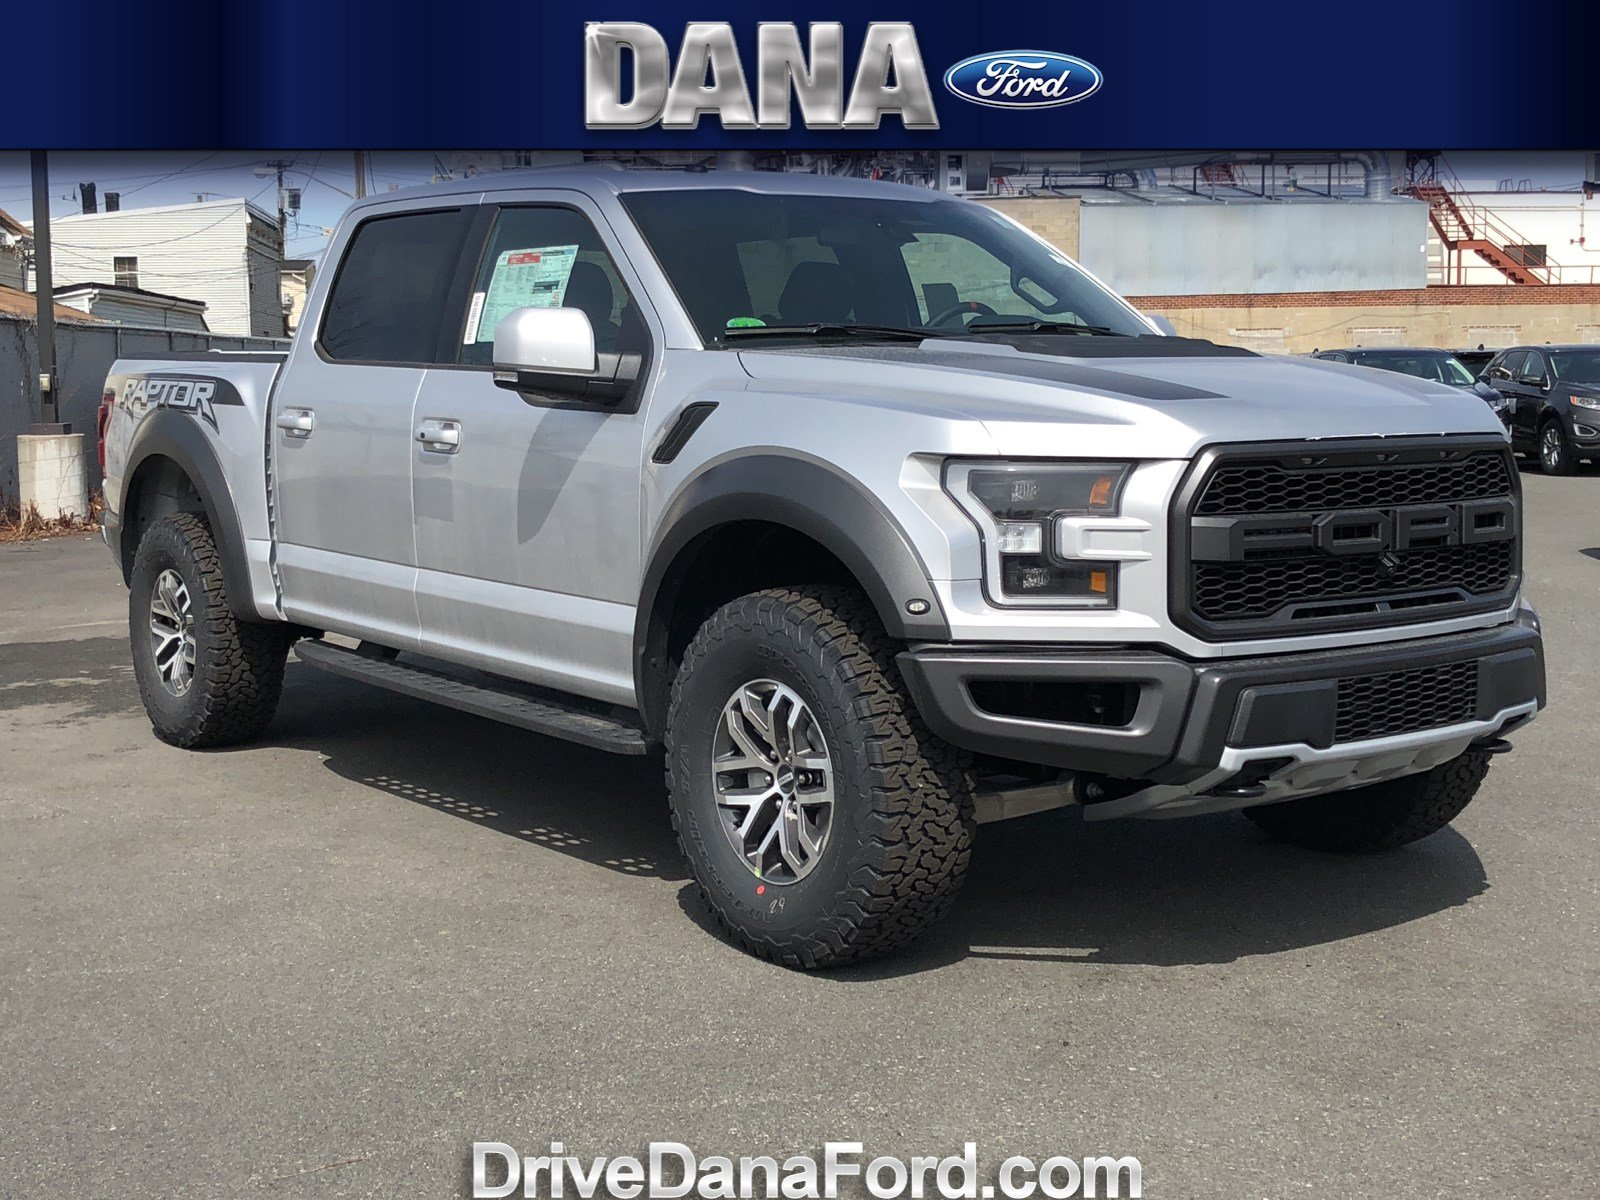 Spradley Barr Ford >> Ford 2018 Air Design F150 Silver Automobile t